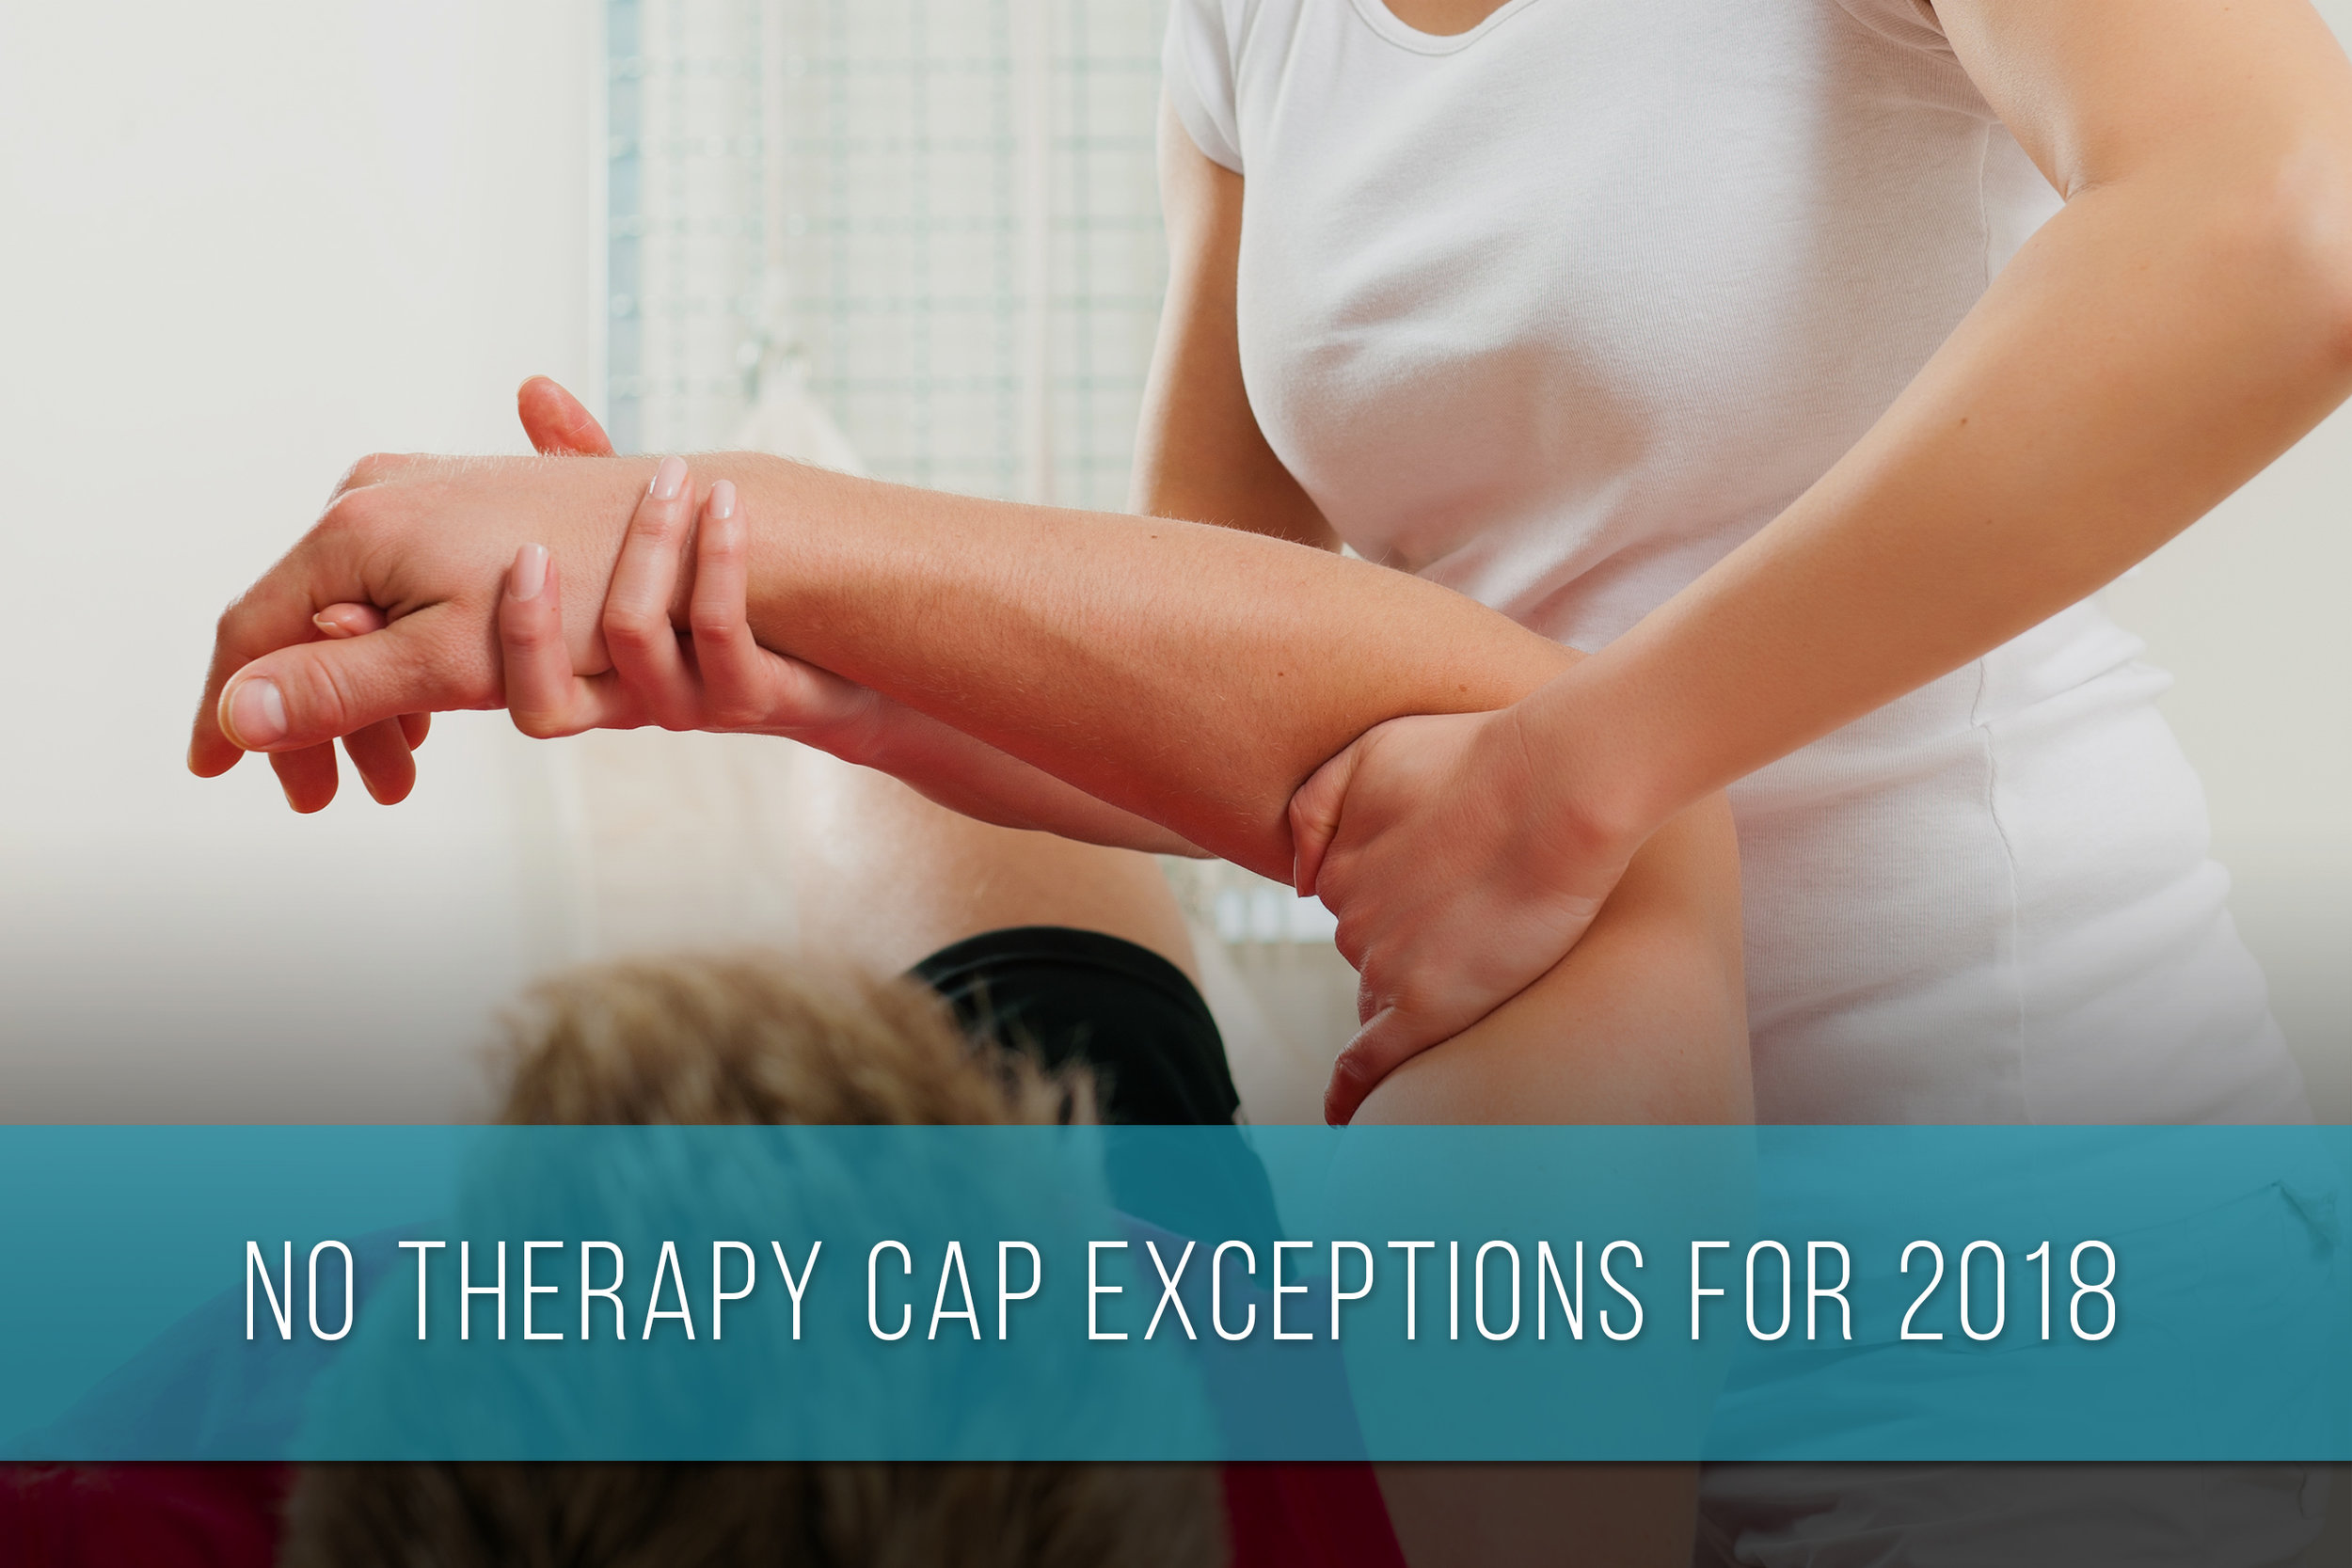 No Therapy Cap Exceptions for 2018.jpg